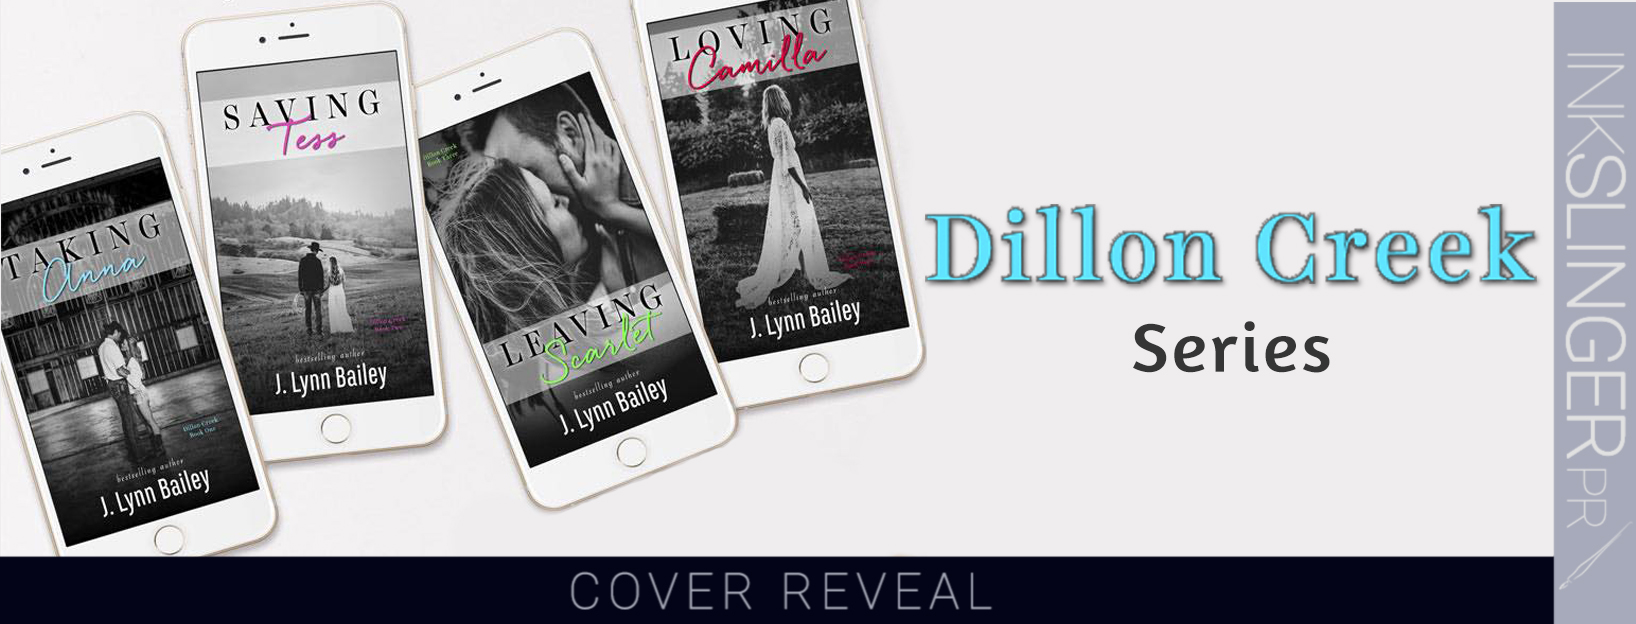 SERIES COVER REVEAL ~ Dillon Creek series by J.Lynn Bailey